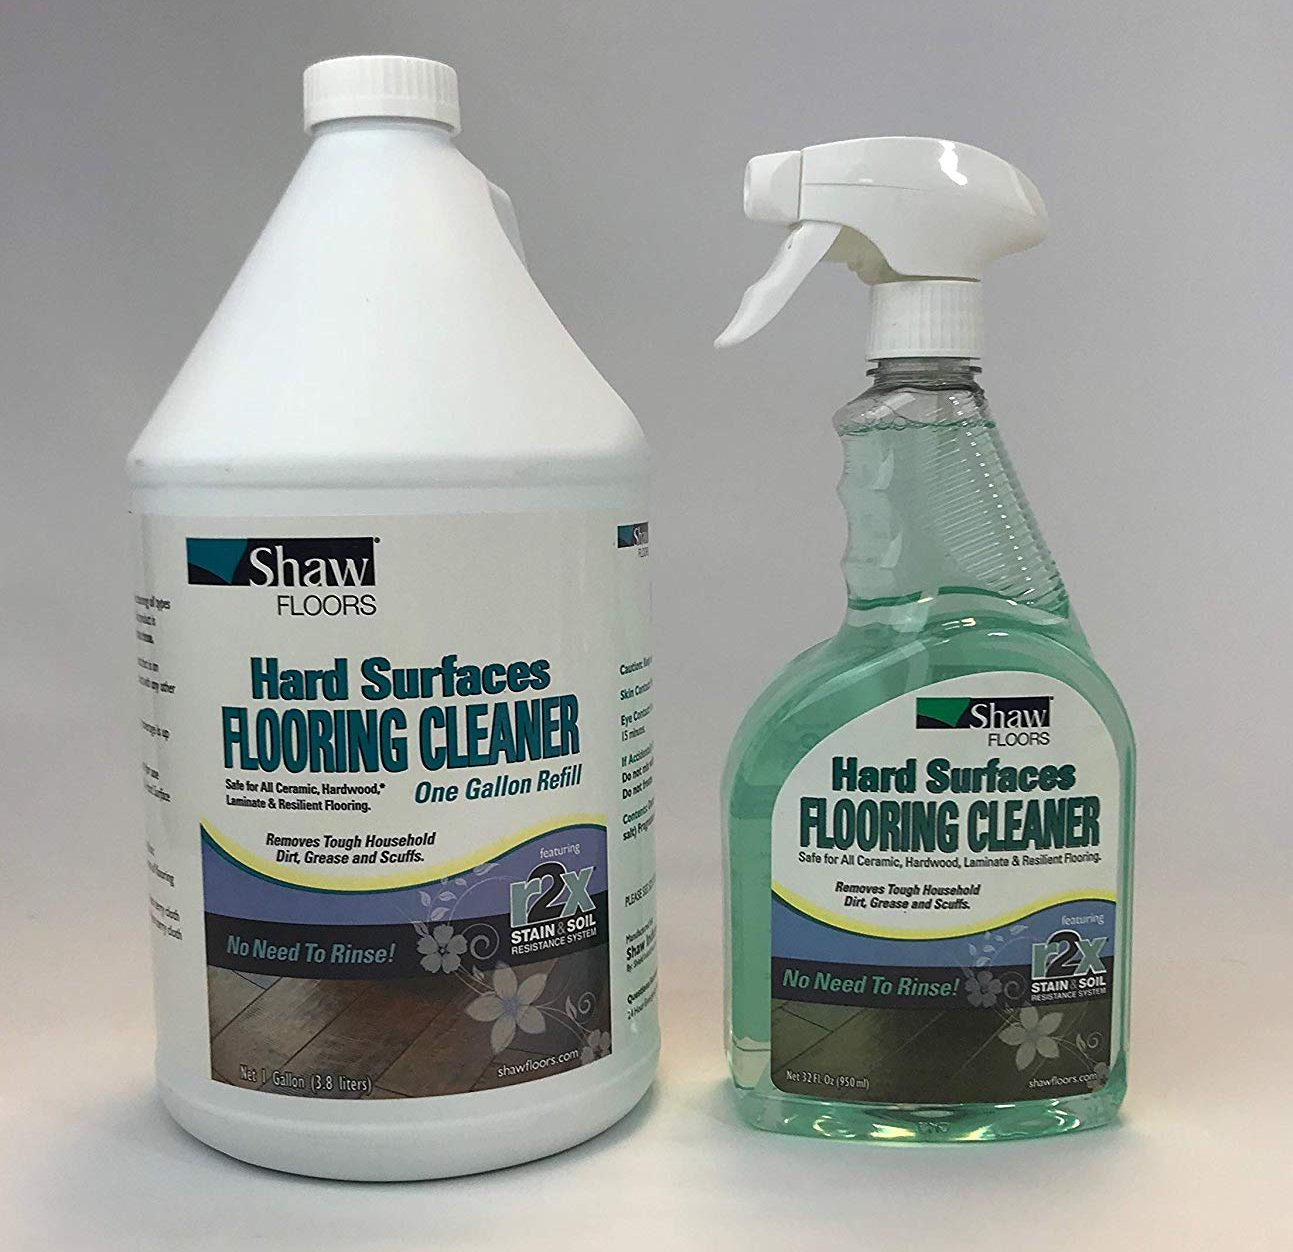 JACK CLEANING SUPPLIES Flooring cleaner | Jack's Carpet And Tile